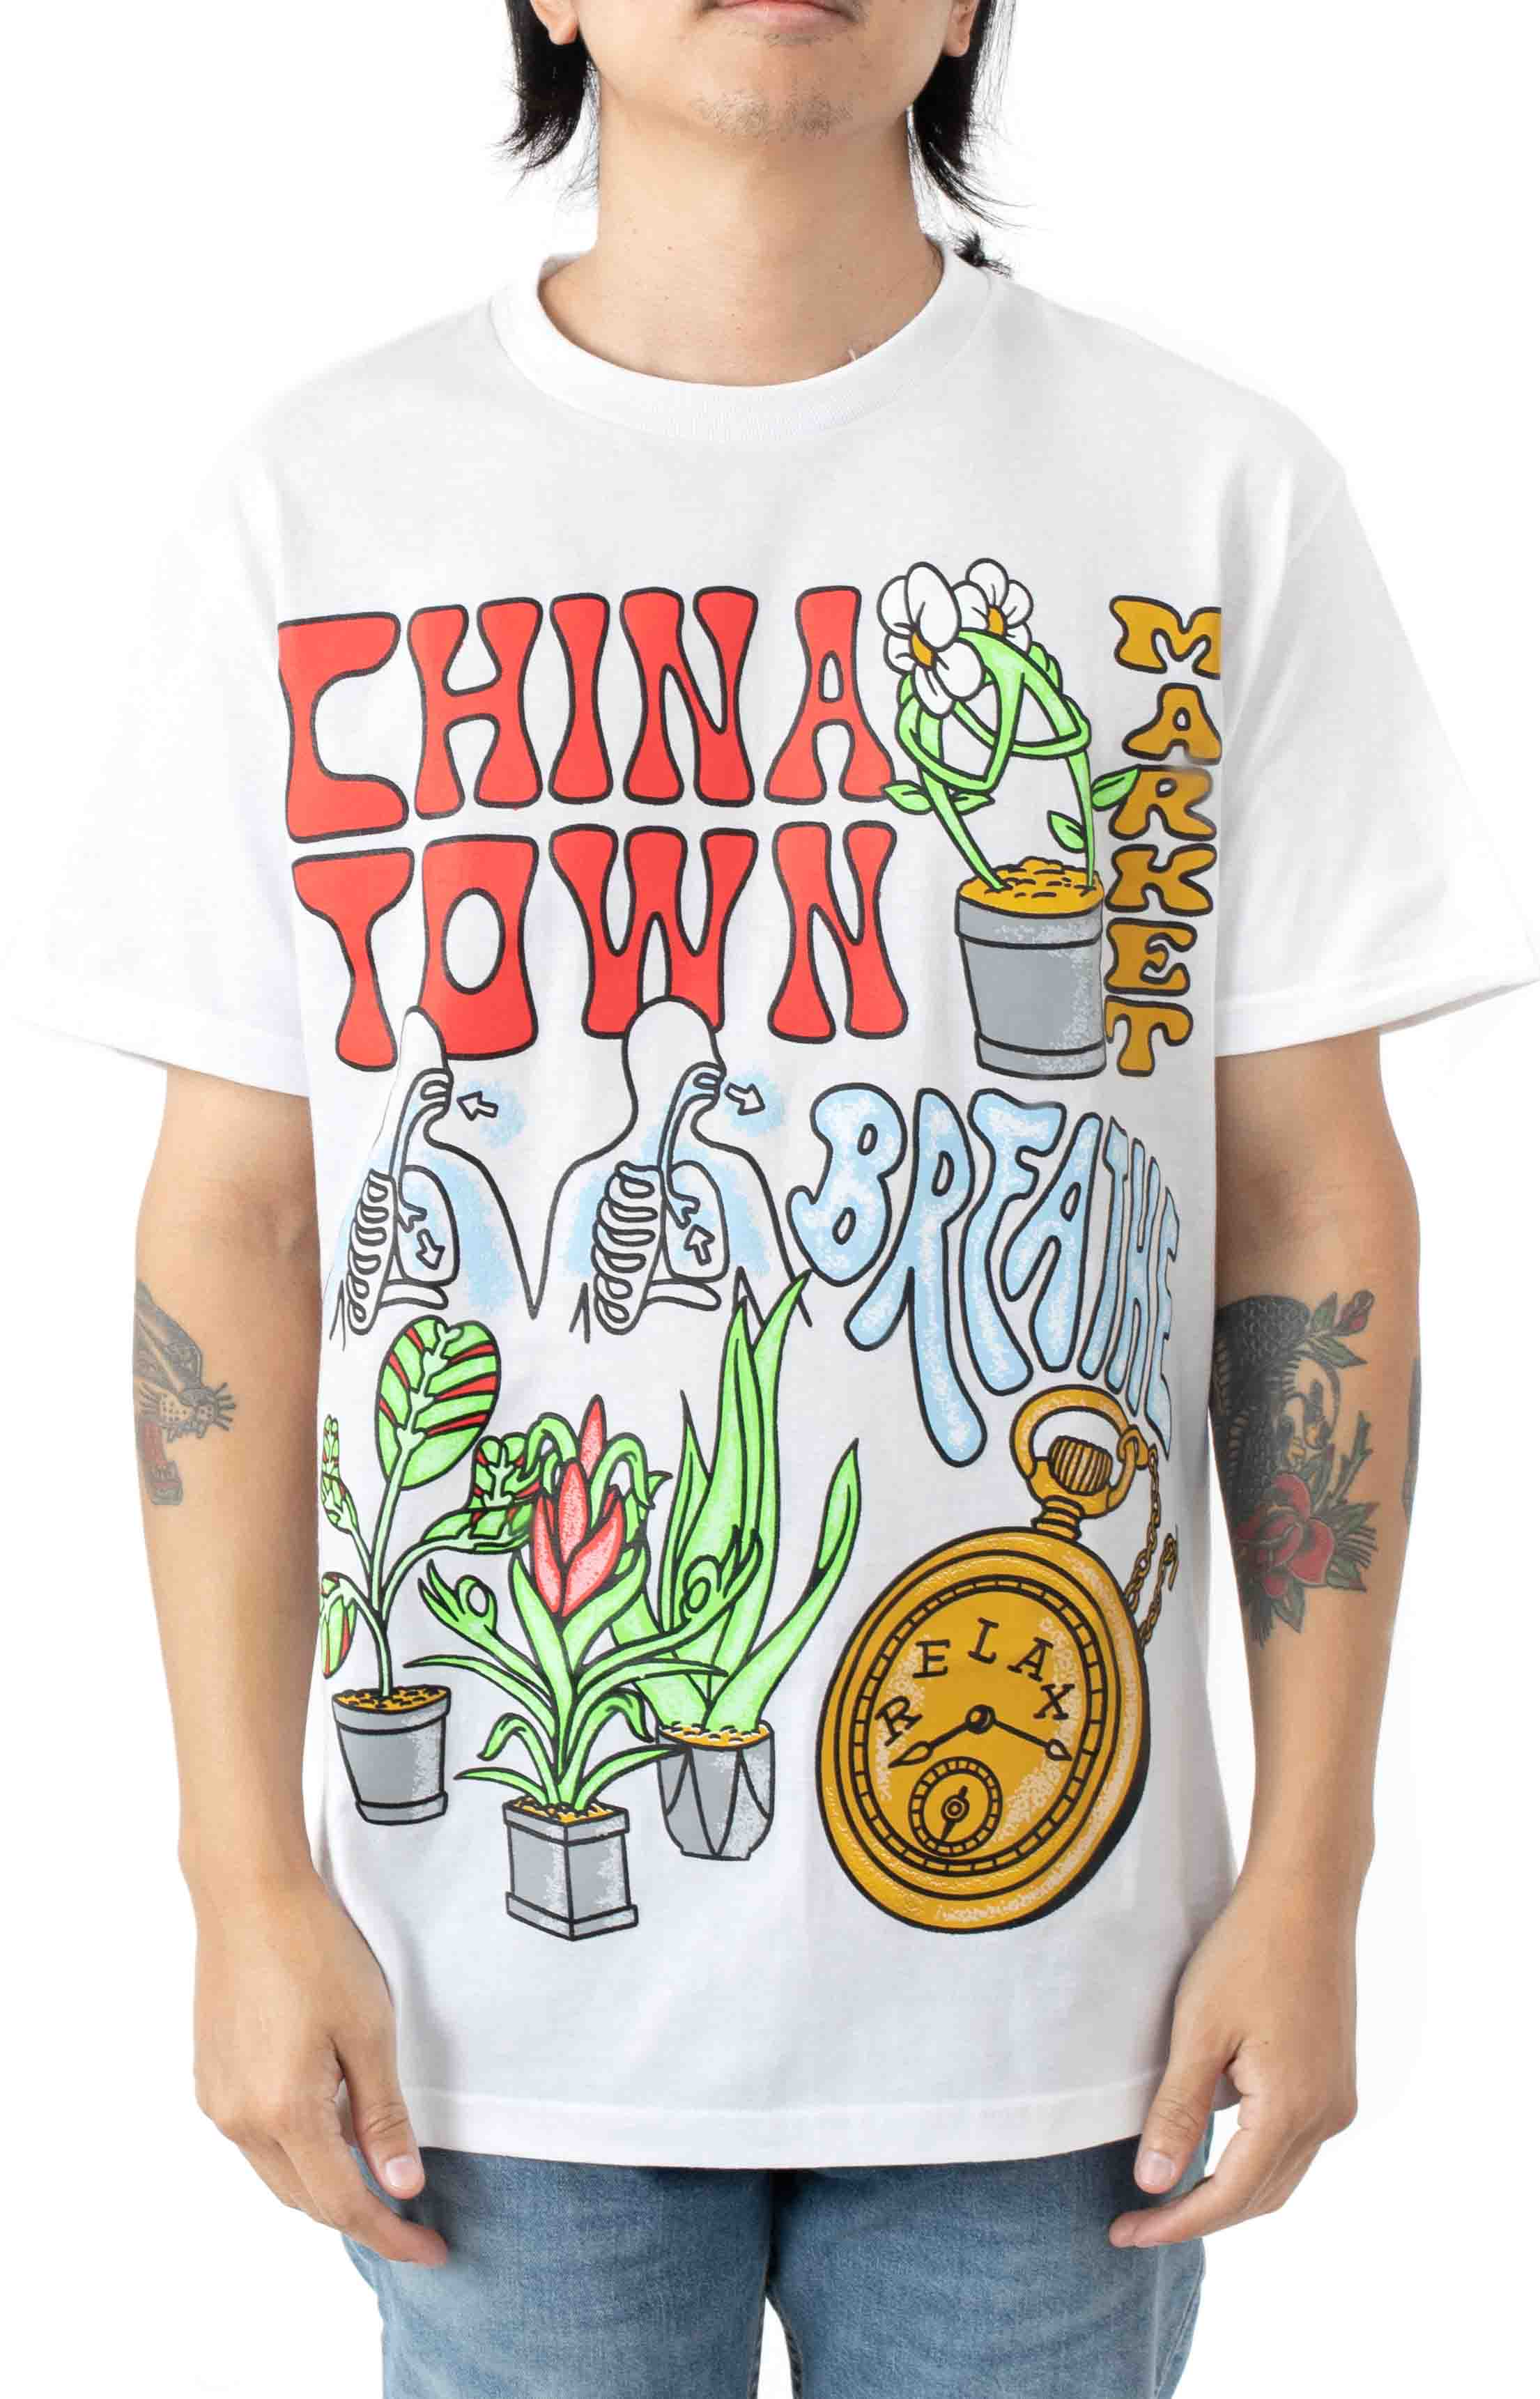 Chinatown Time Lord T-Shirt - White